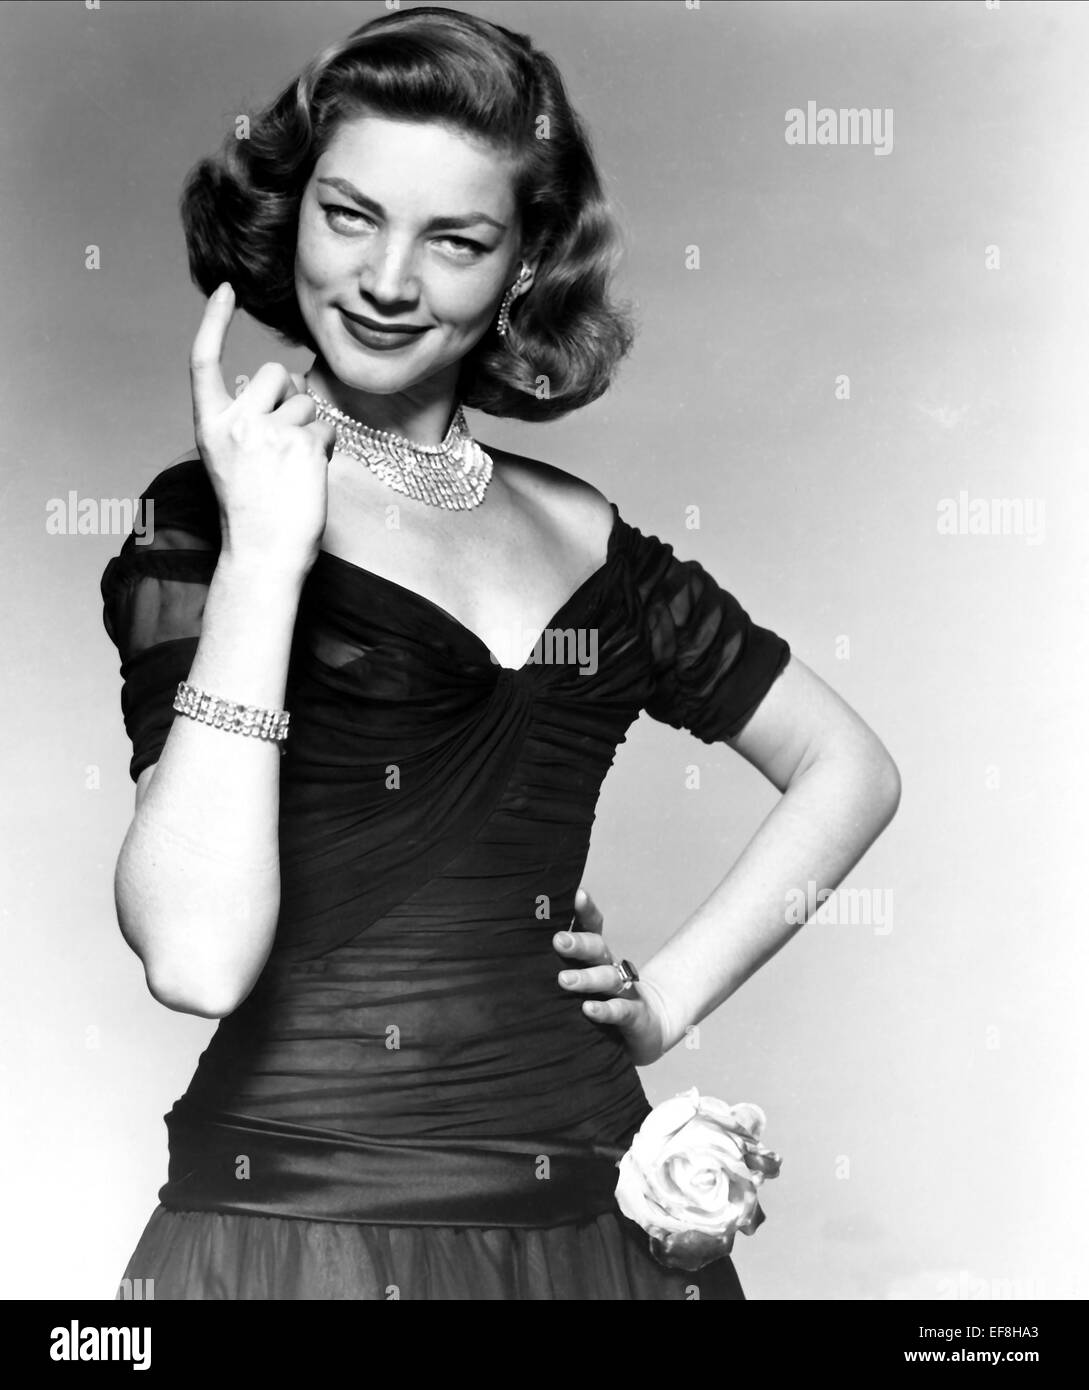 How to marry a millionaire lauren bacall - photo#7